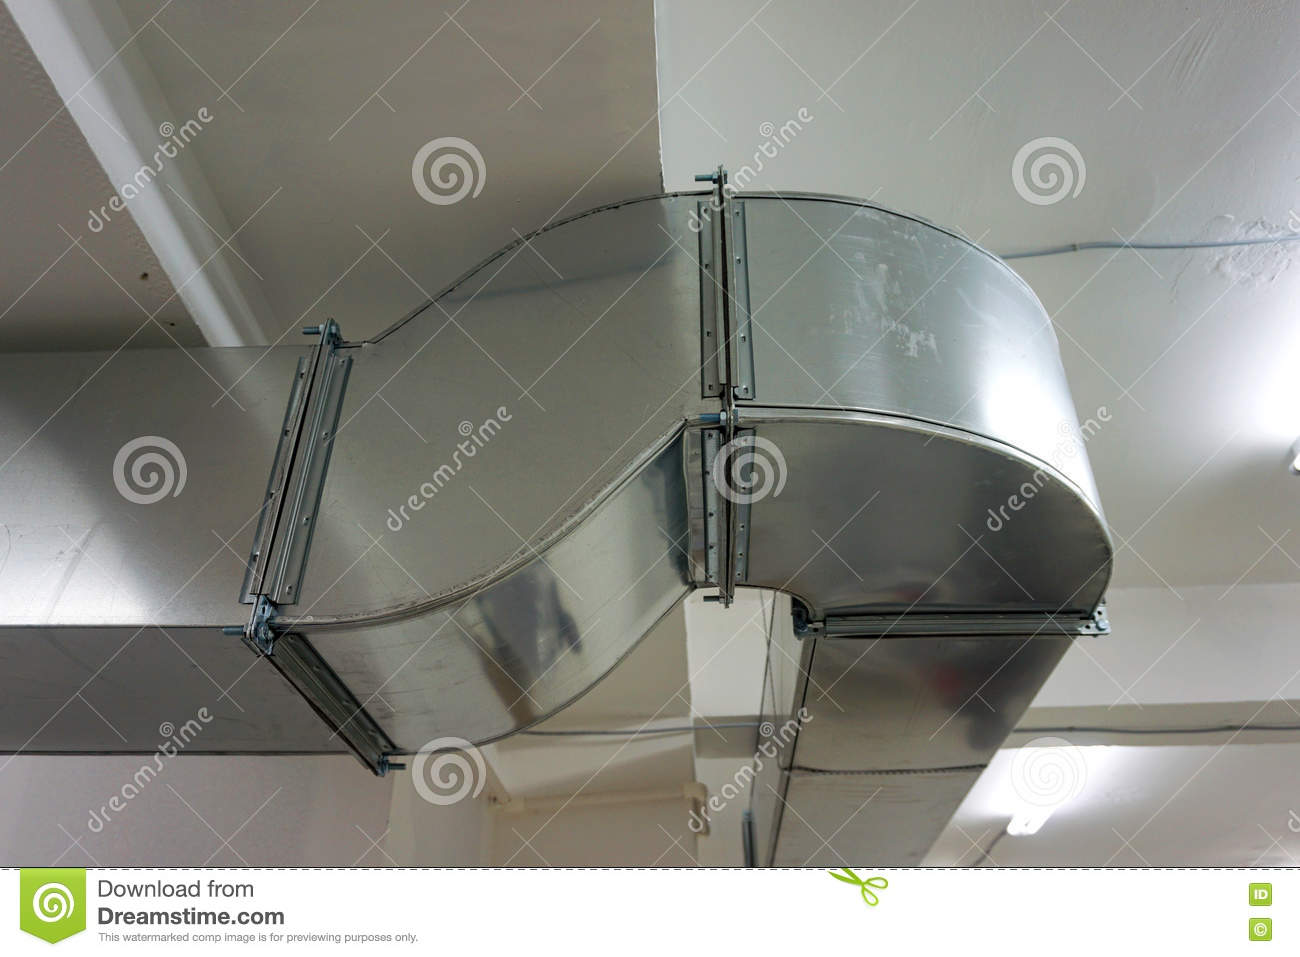 Ventilation ducts